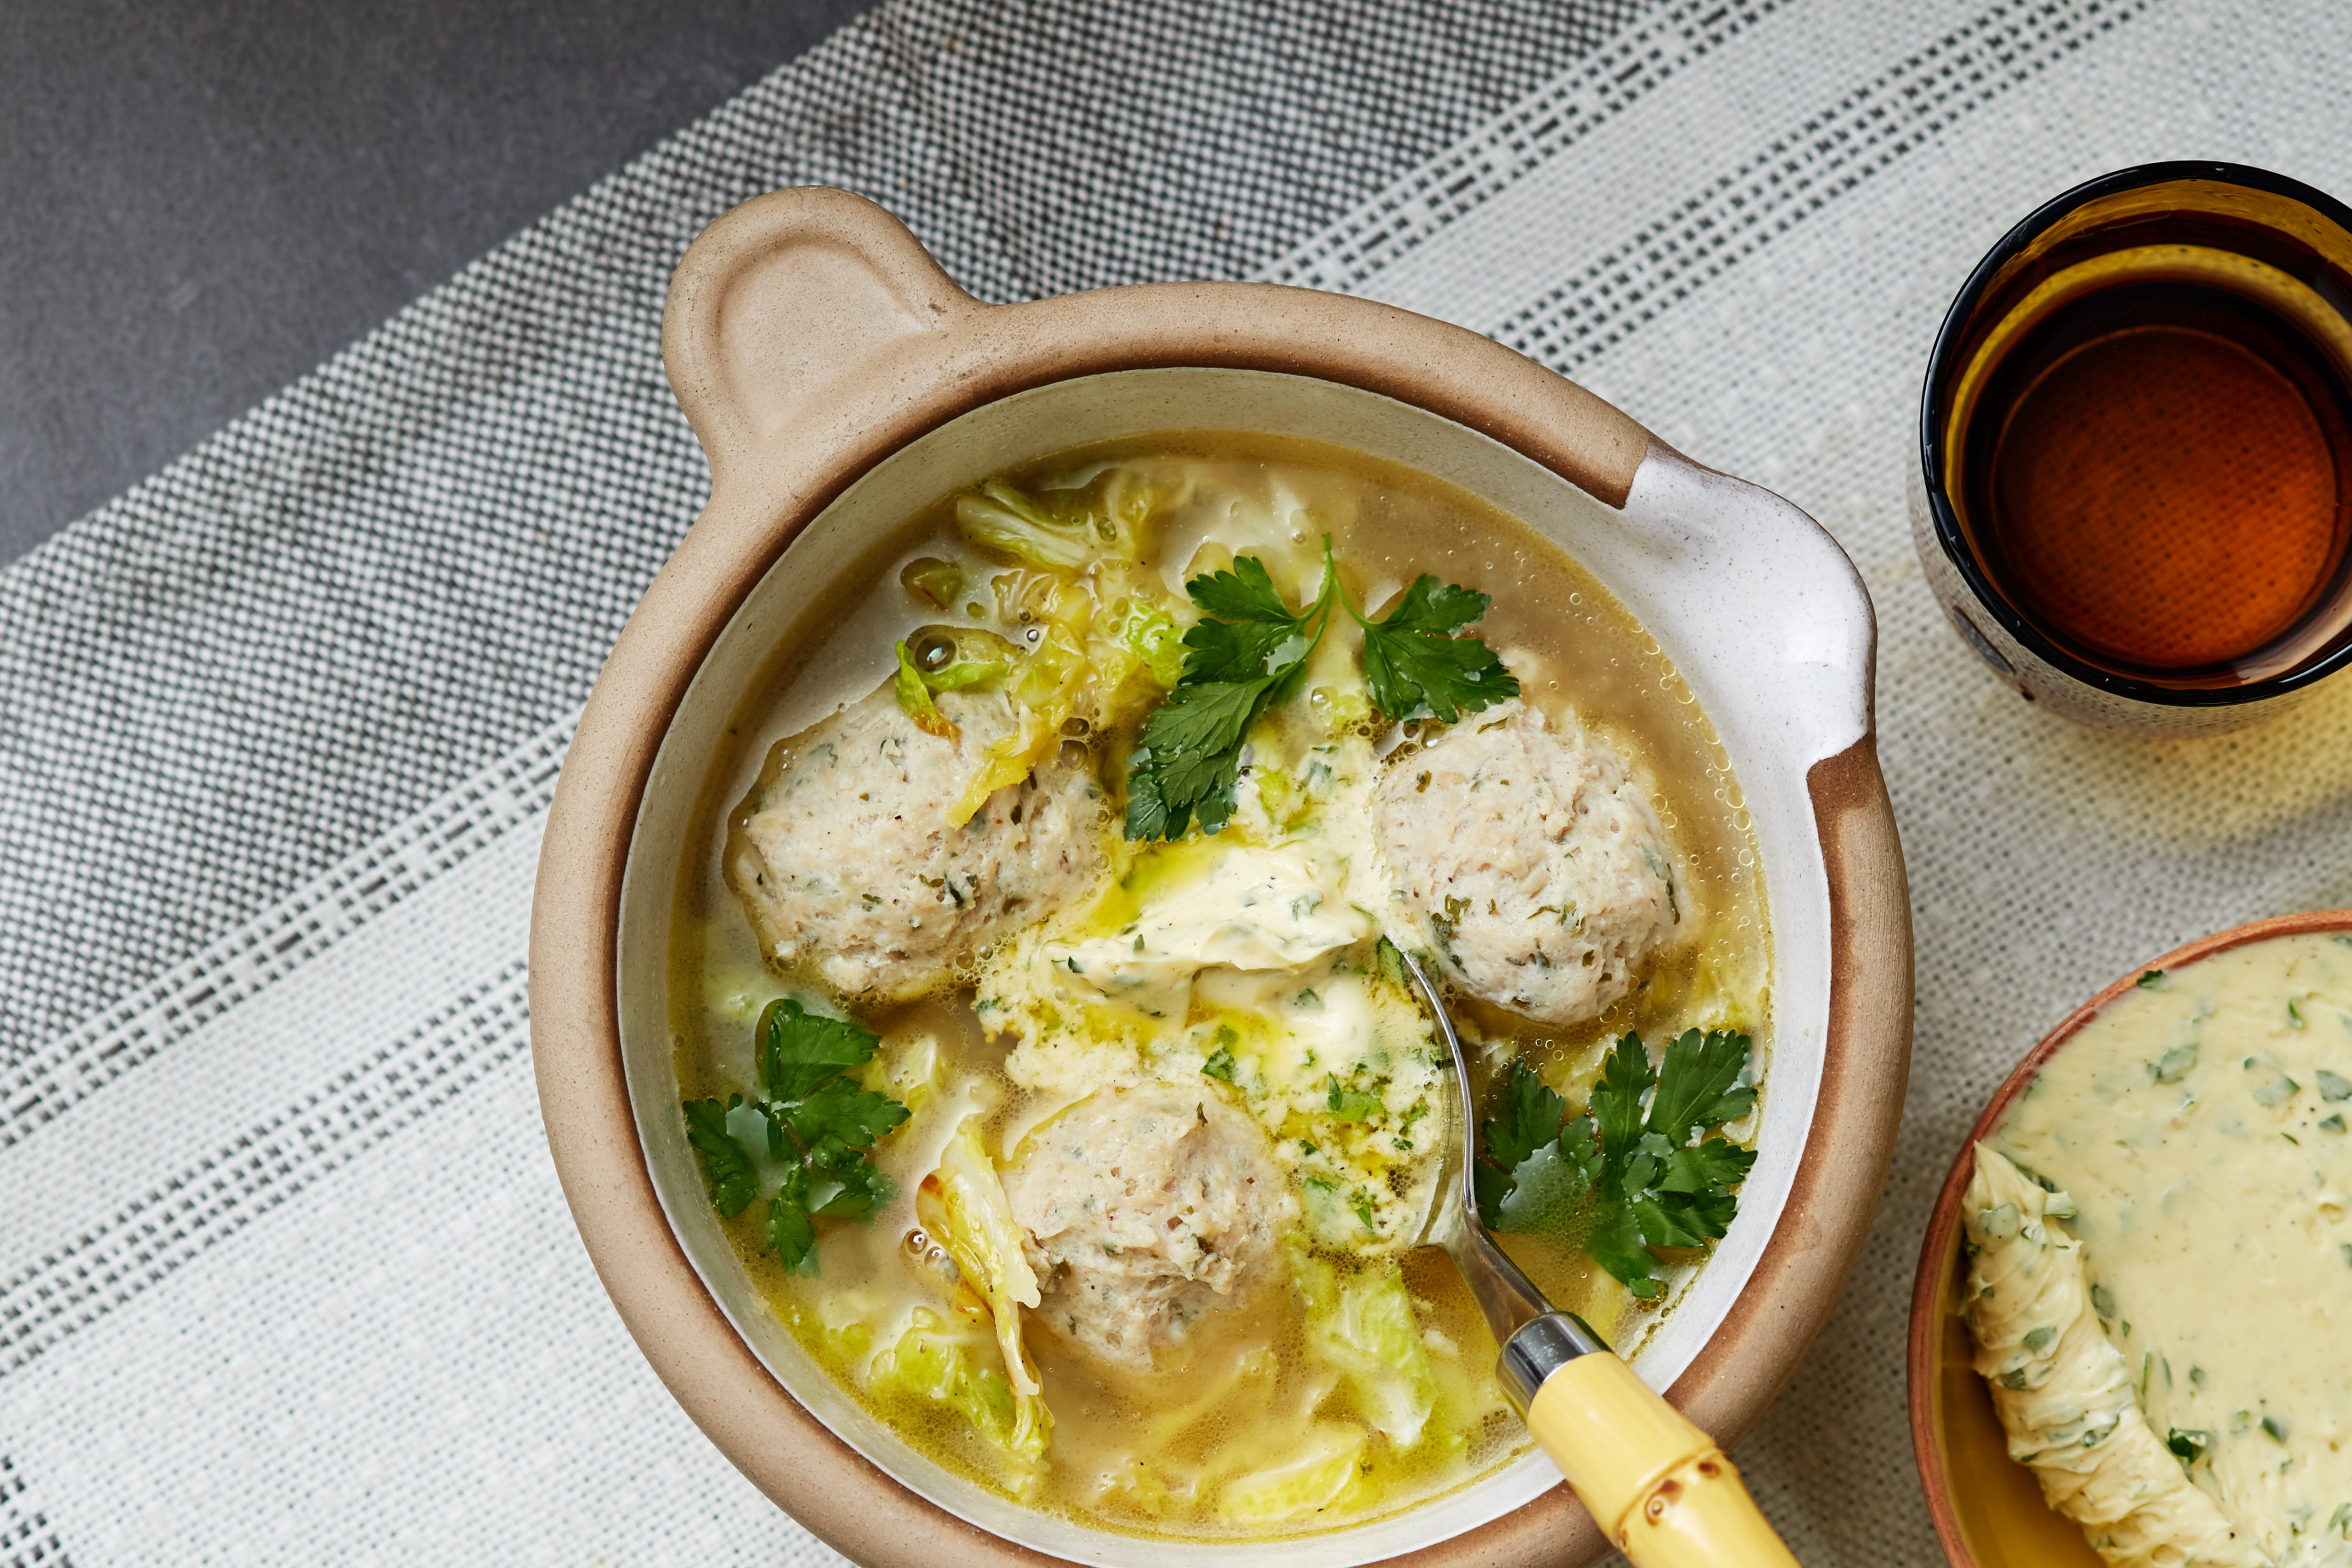 Keto cabbage soup with chicken quenelles